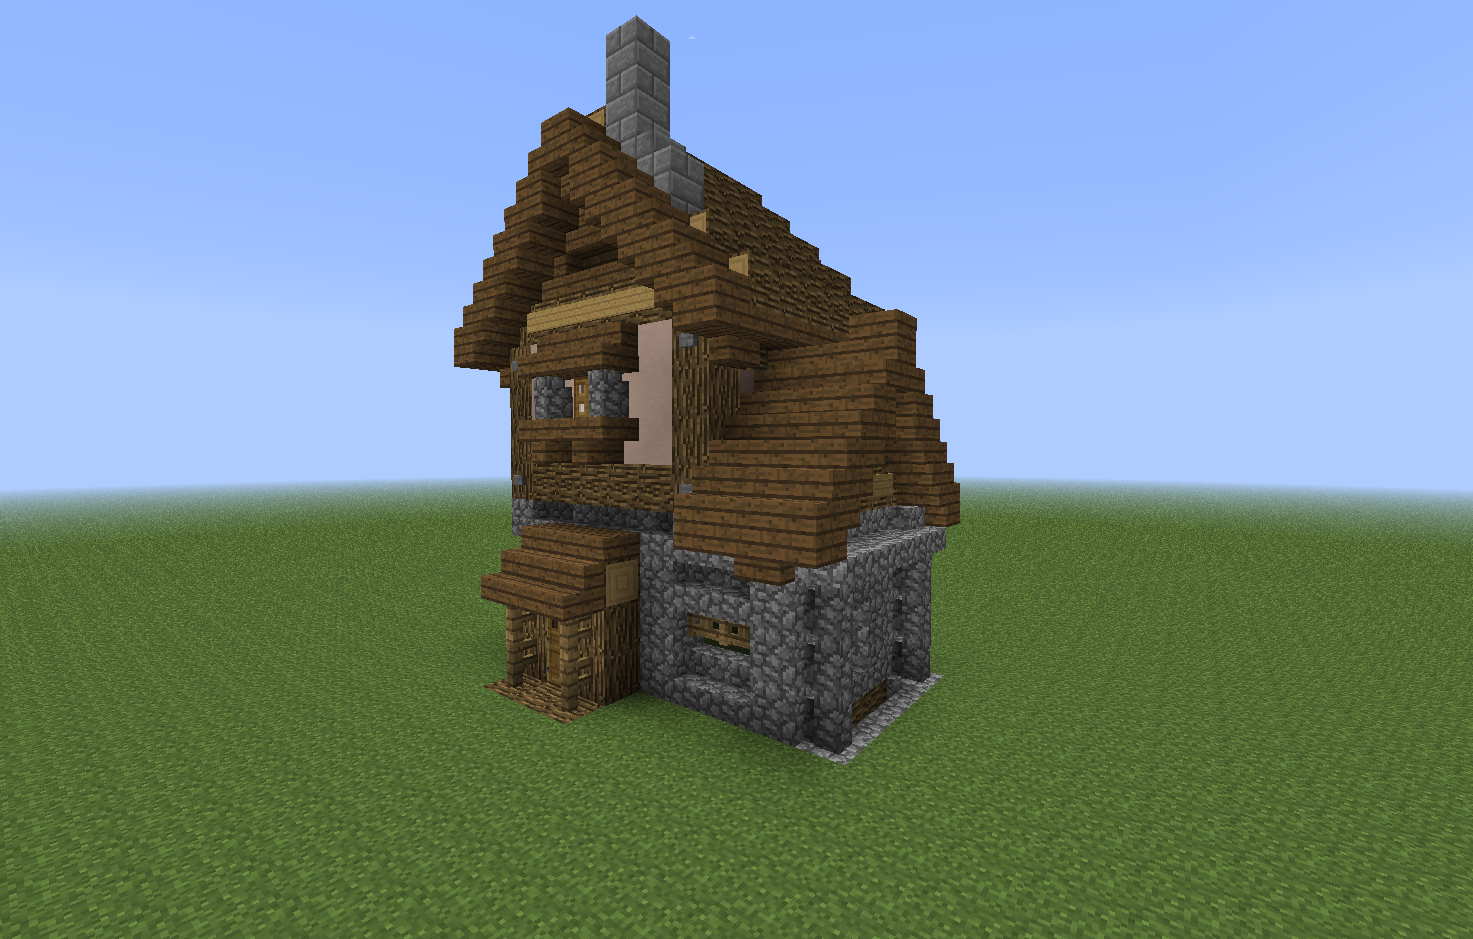 minecraft medieval house | Minecraft Seeds PC | Things to make ...